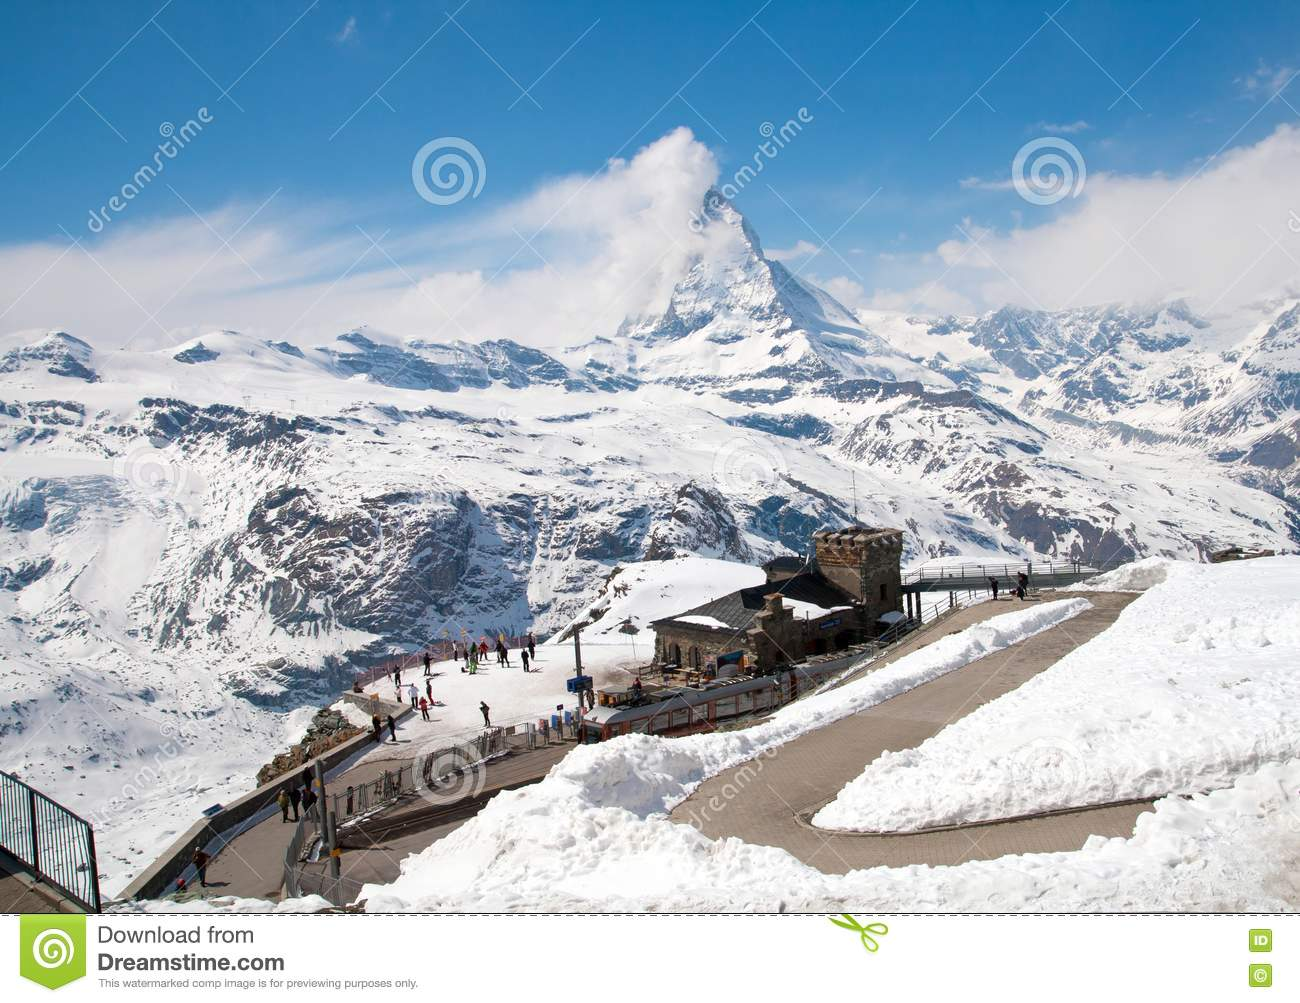 Alp Peak http://www.dreamstime.com/royalty-free-stock-photography-matterhorn-peak-alps-image18519207